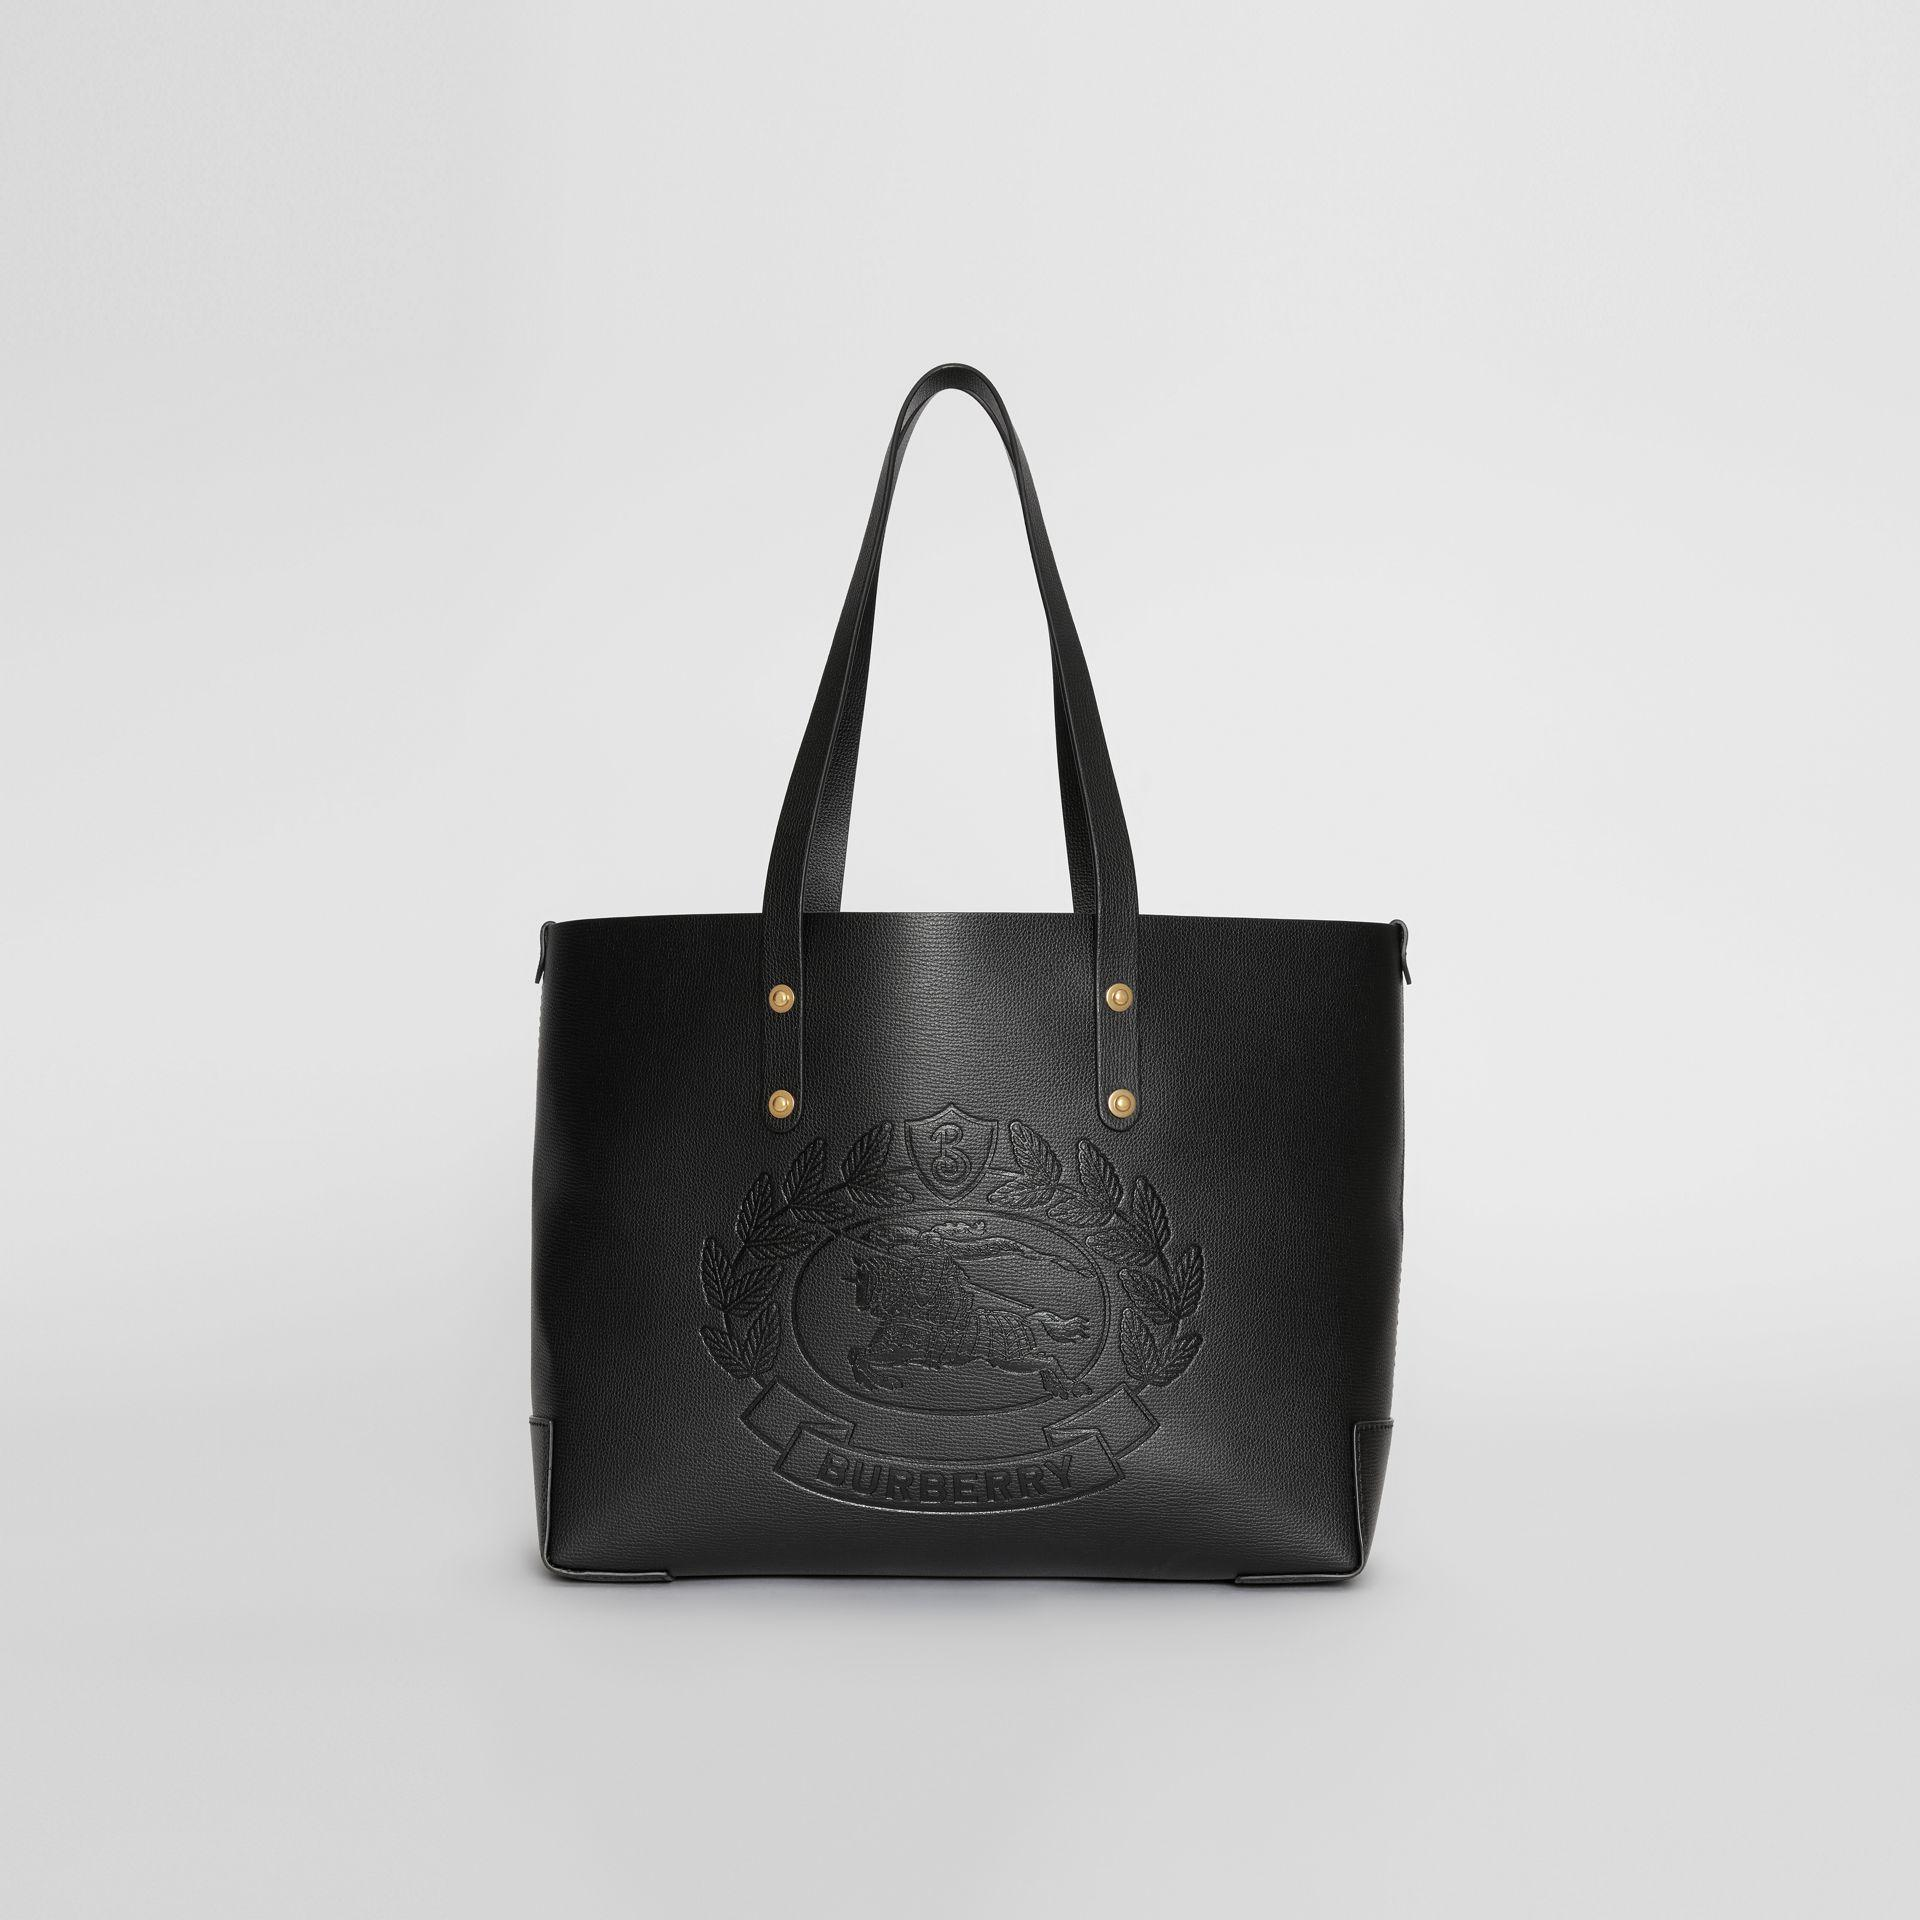 5d3a2188779a Burberry Small Embossed Crest Leather Tote In Black